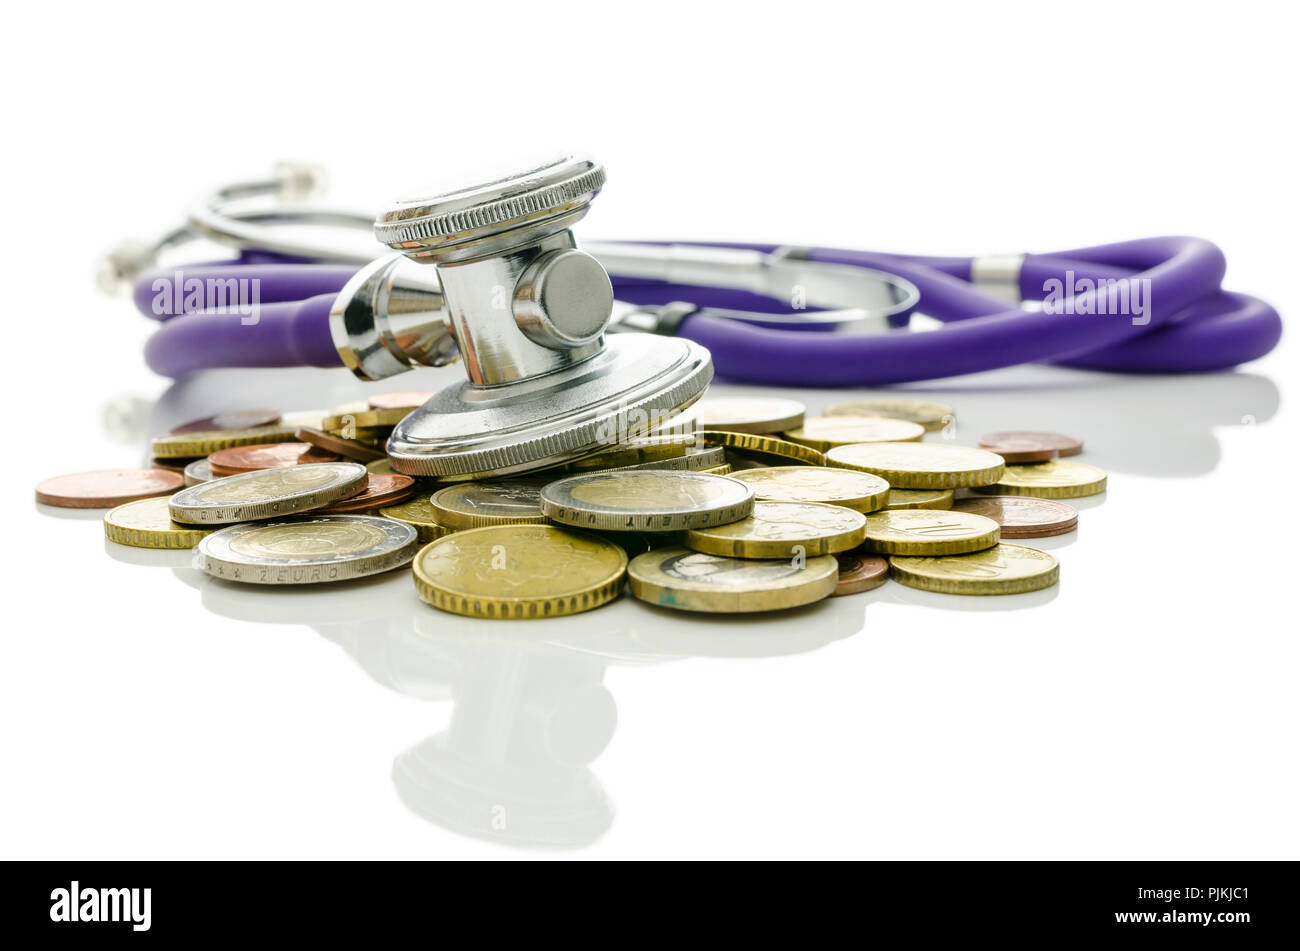 Concept of financial crisis recovery. Stethoscope on euro coins representing help and hope for the market. - Stock Image